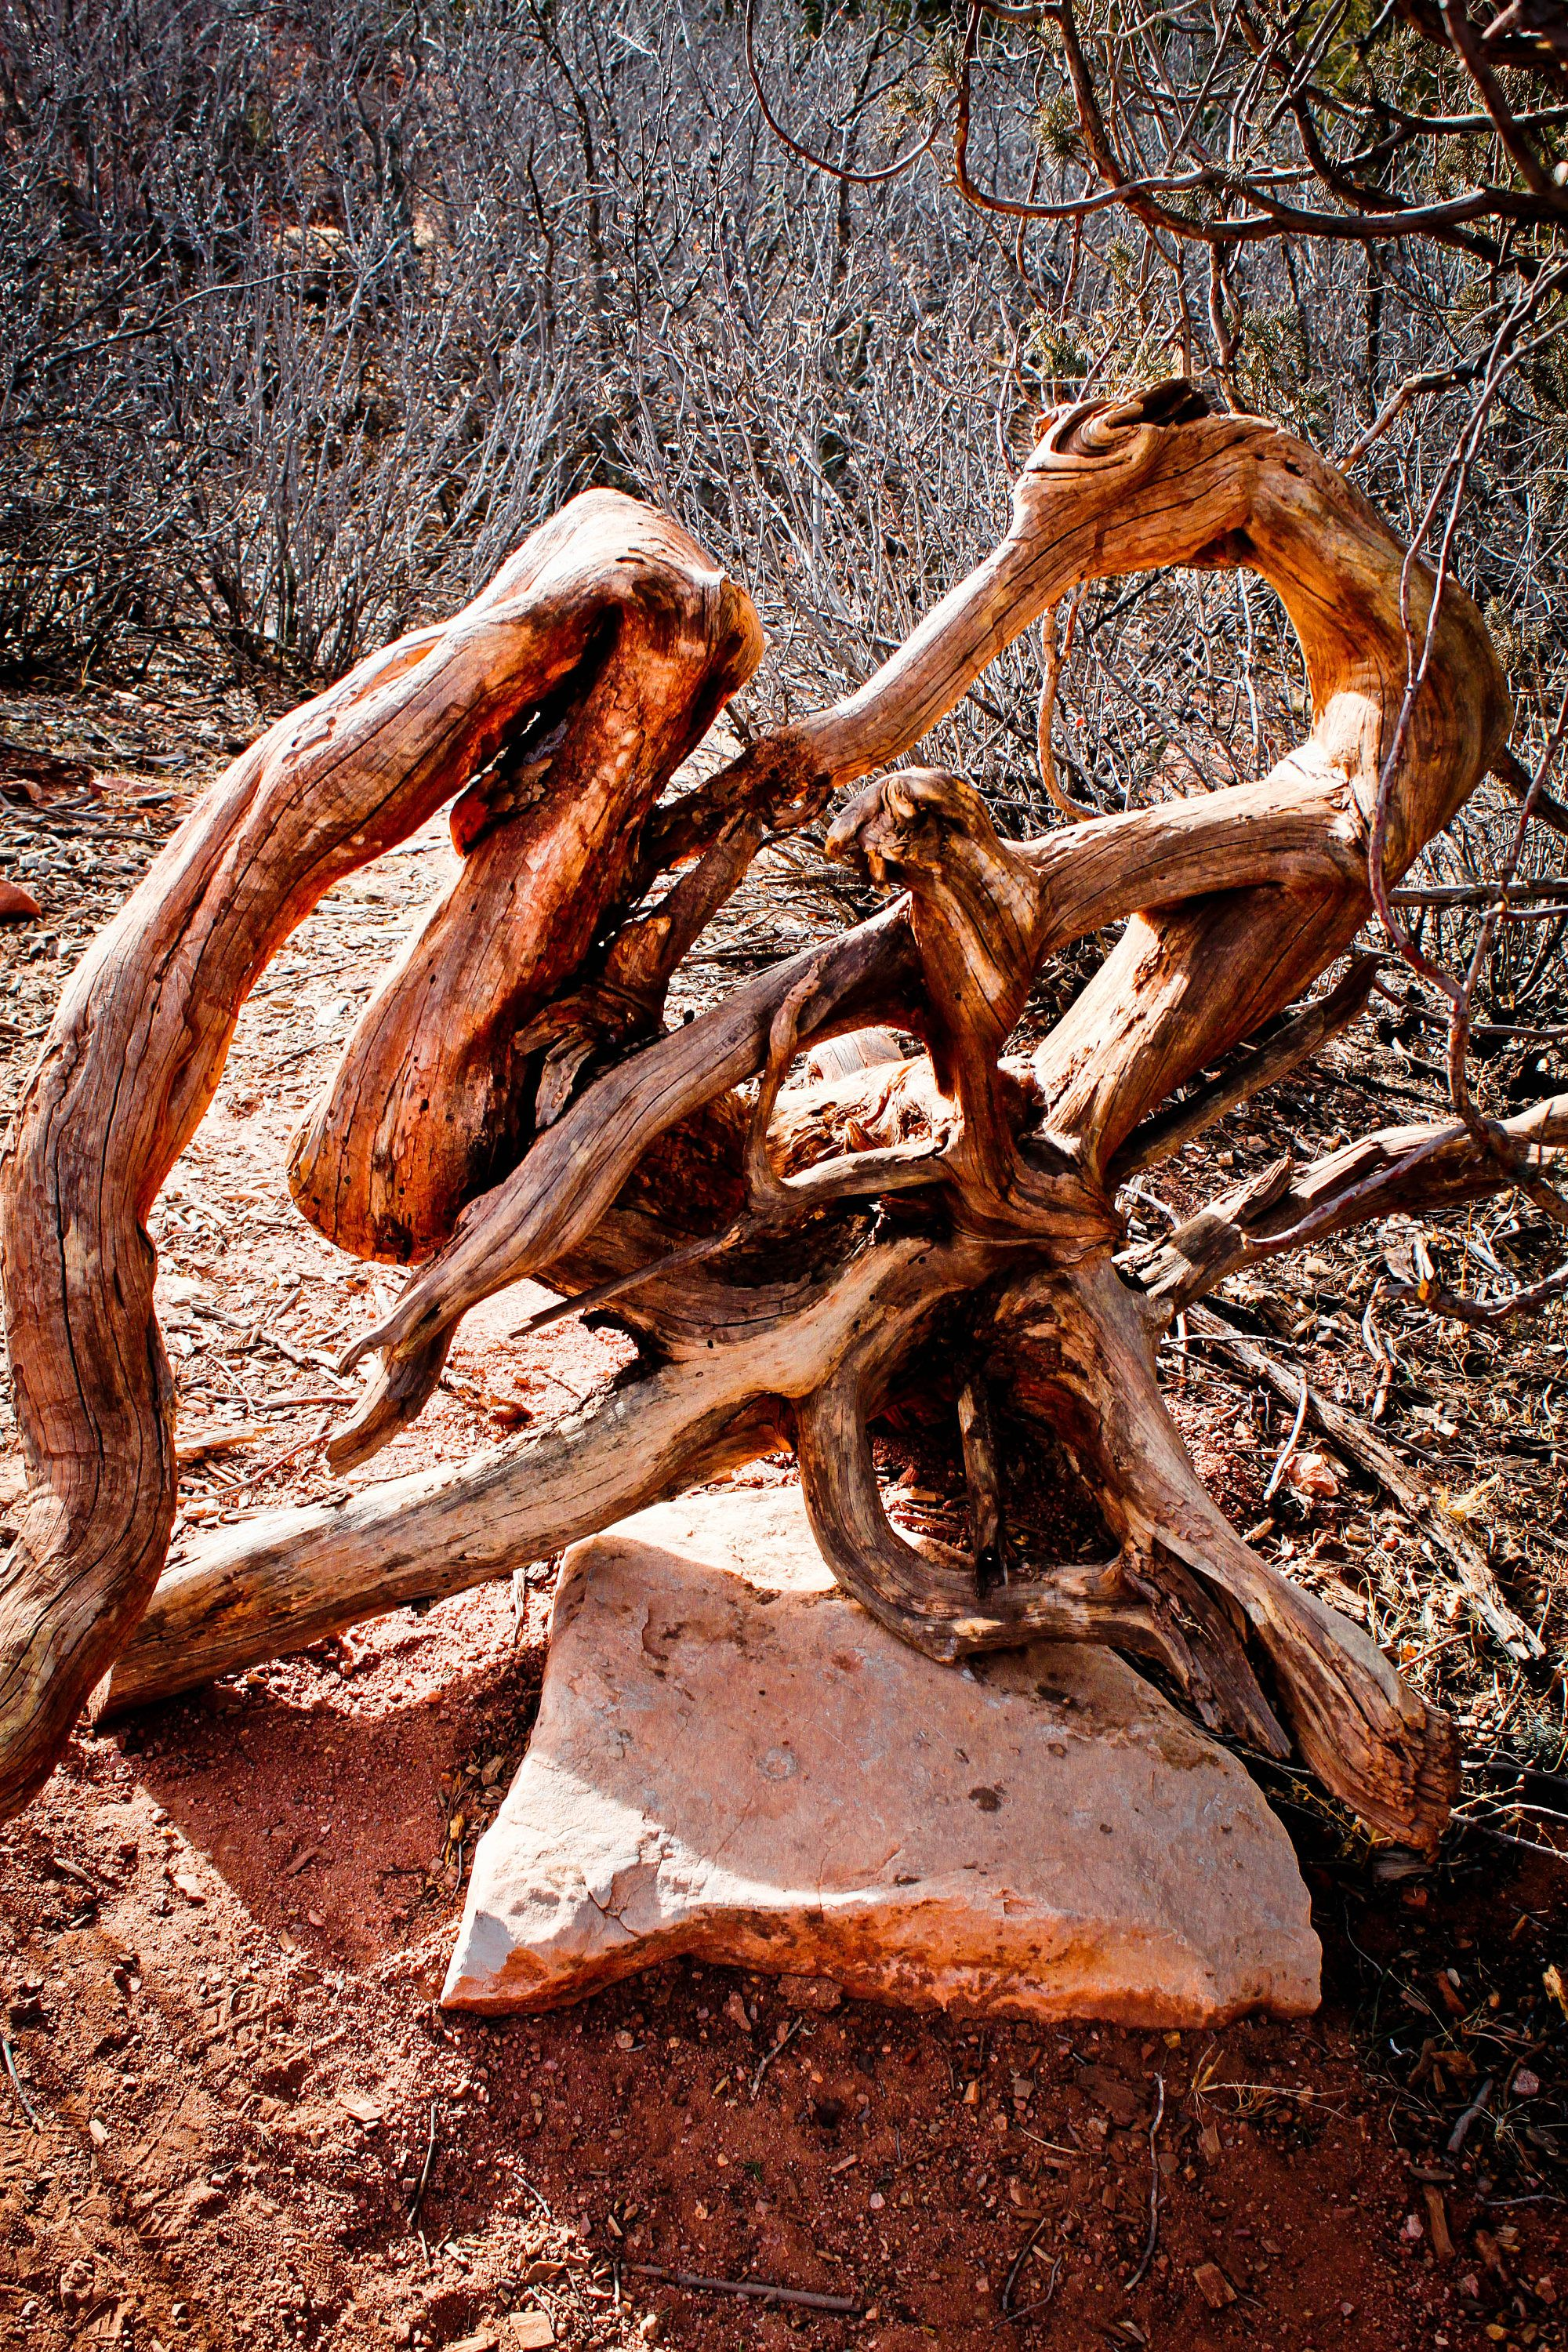 Drift wood, Garden of the Gods, Red, Mountains, Colorado, Fine Art, Photography by Studio50613 on Etsy